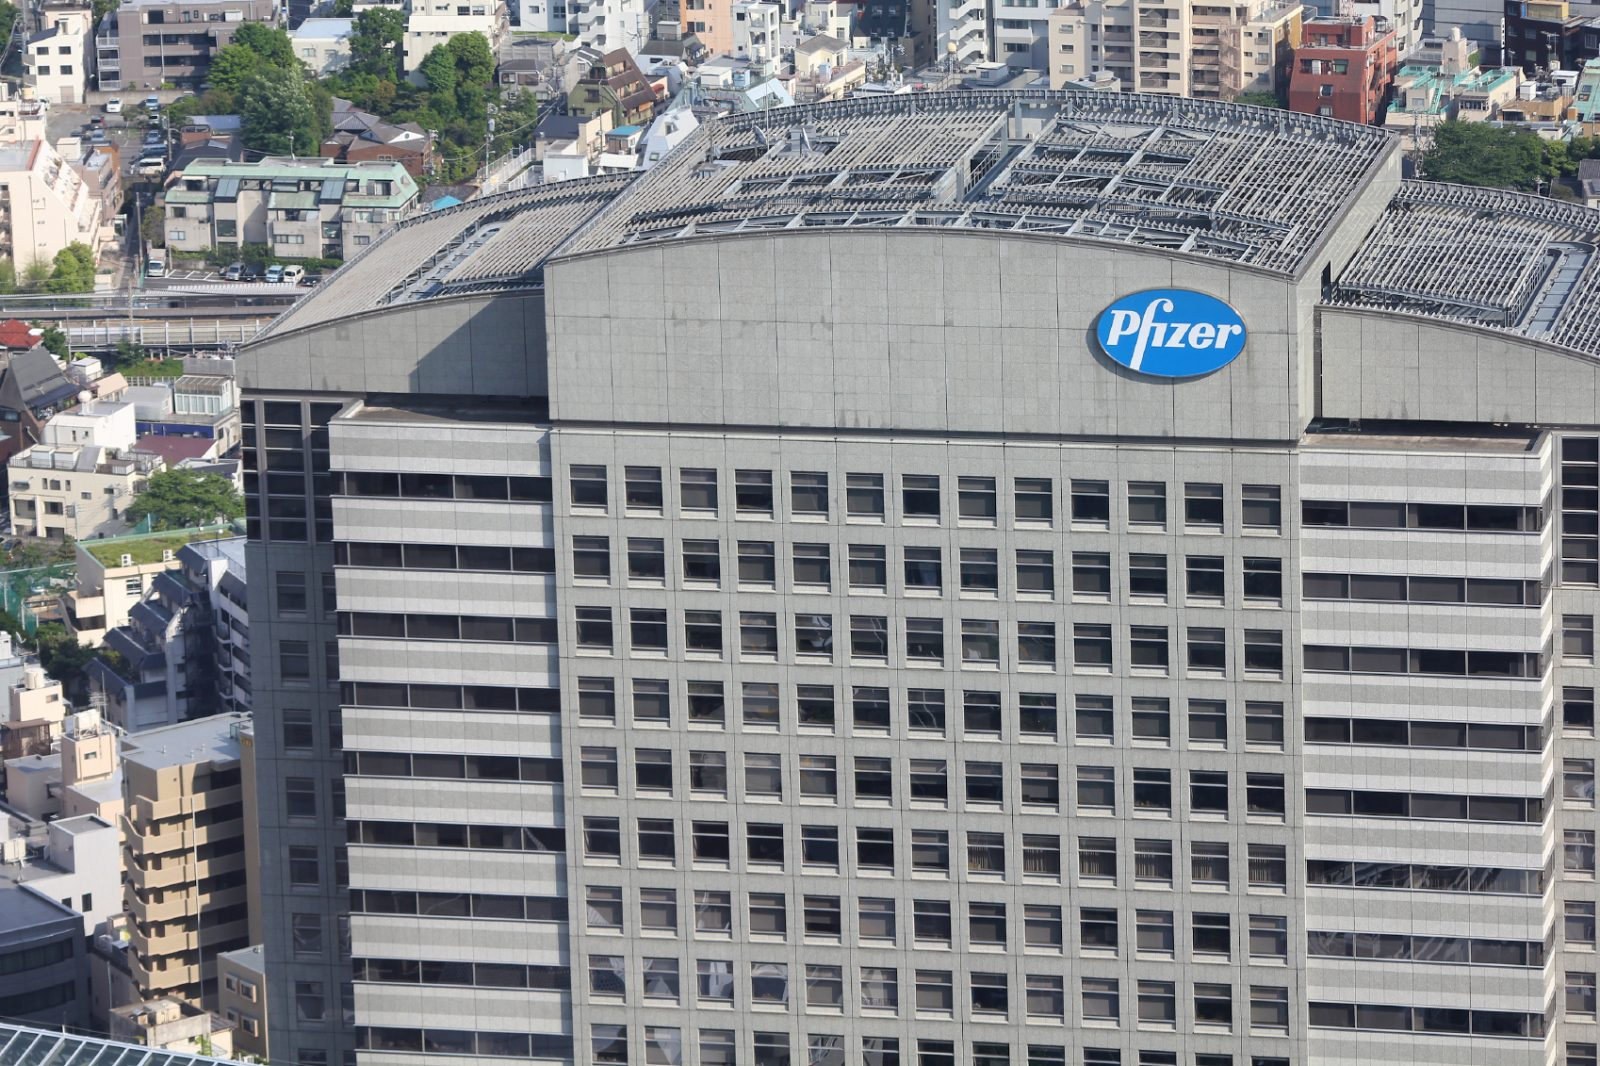 Pfizer Headquarters